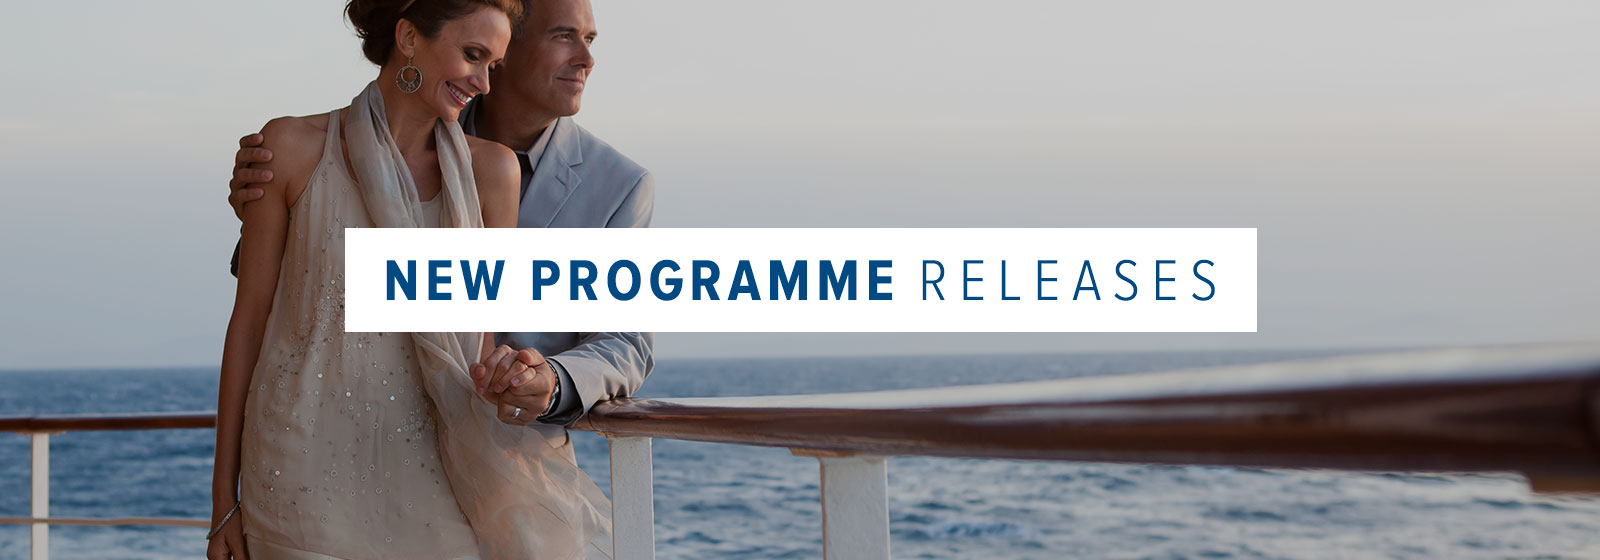 New Programme releases